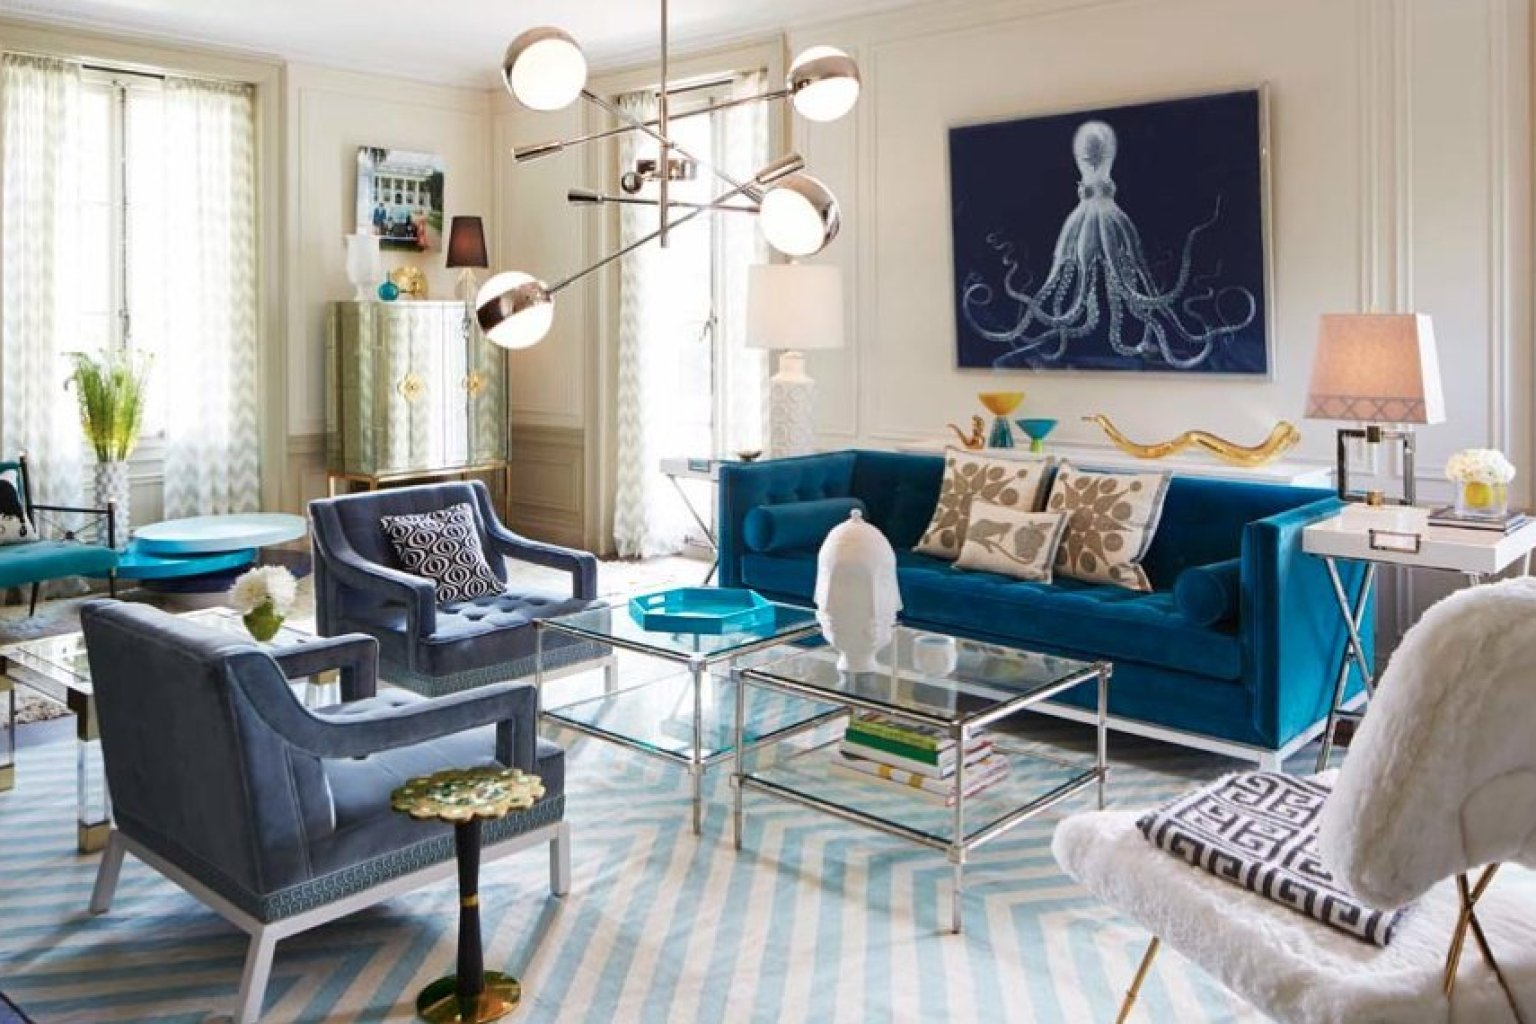 Colorful Rugs In Living Room Blue Green